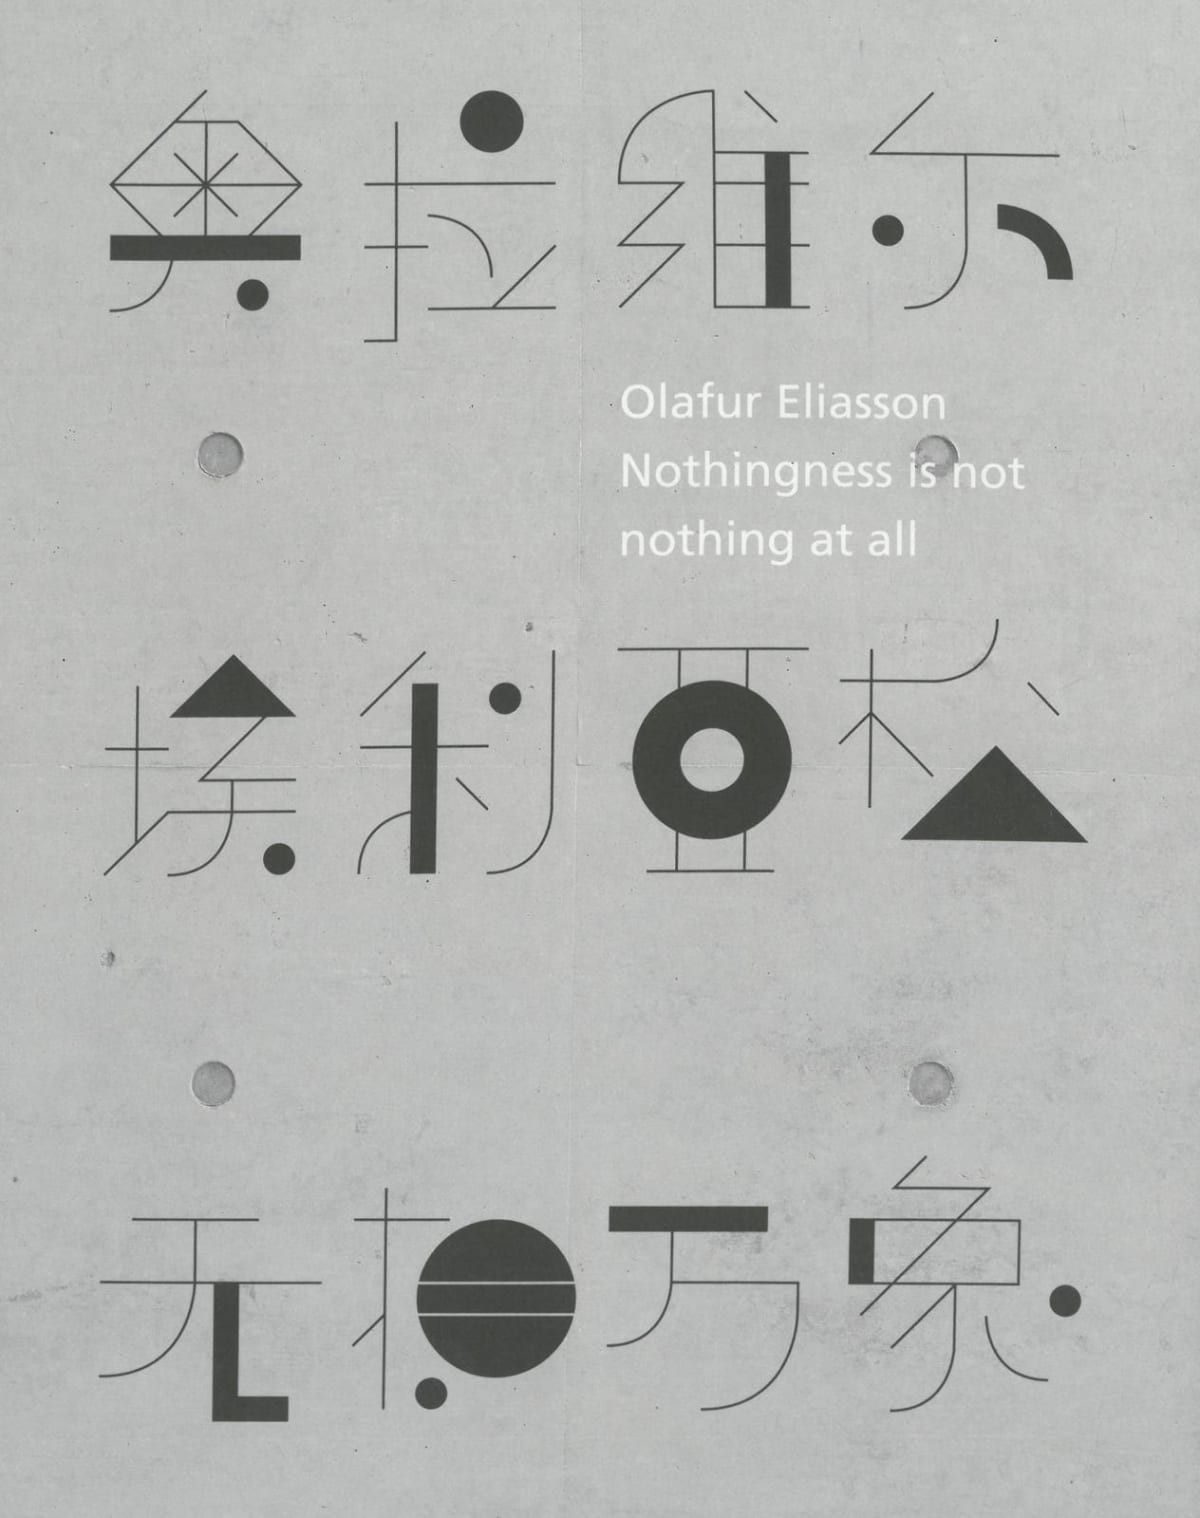 Olafur Eliasson: Nothingness is not nothing at all